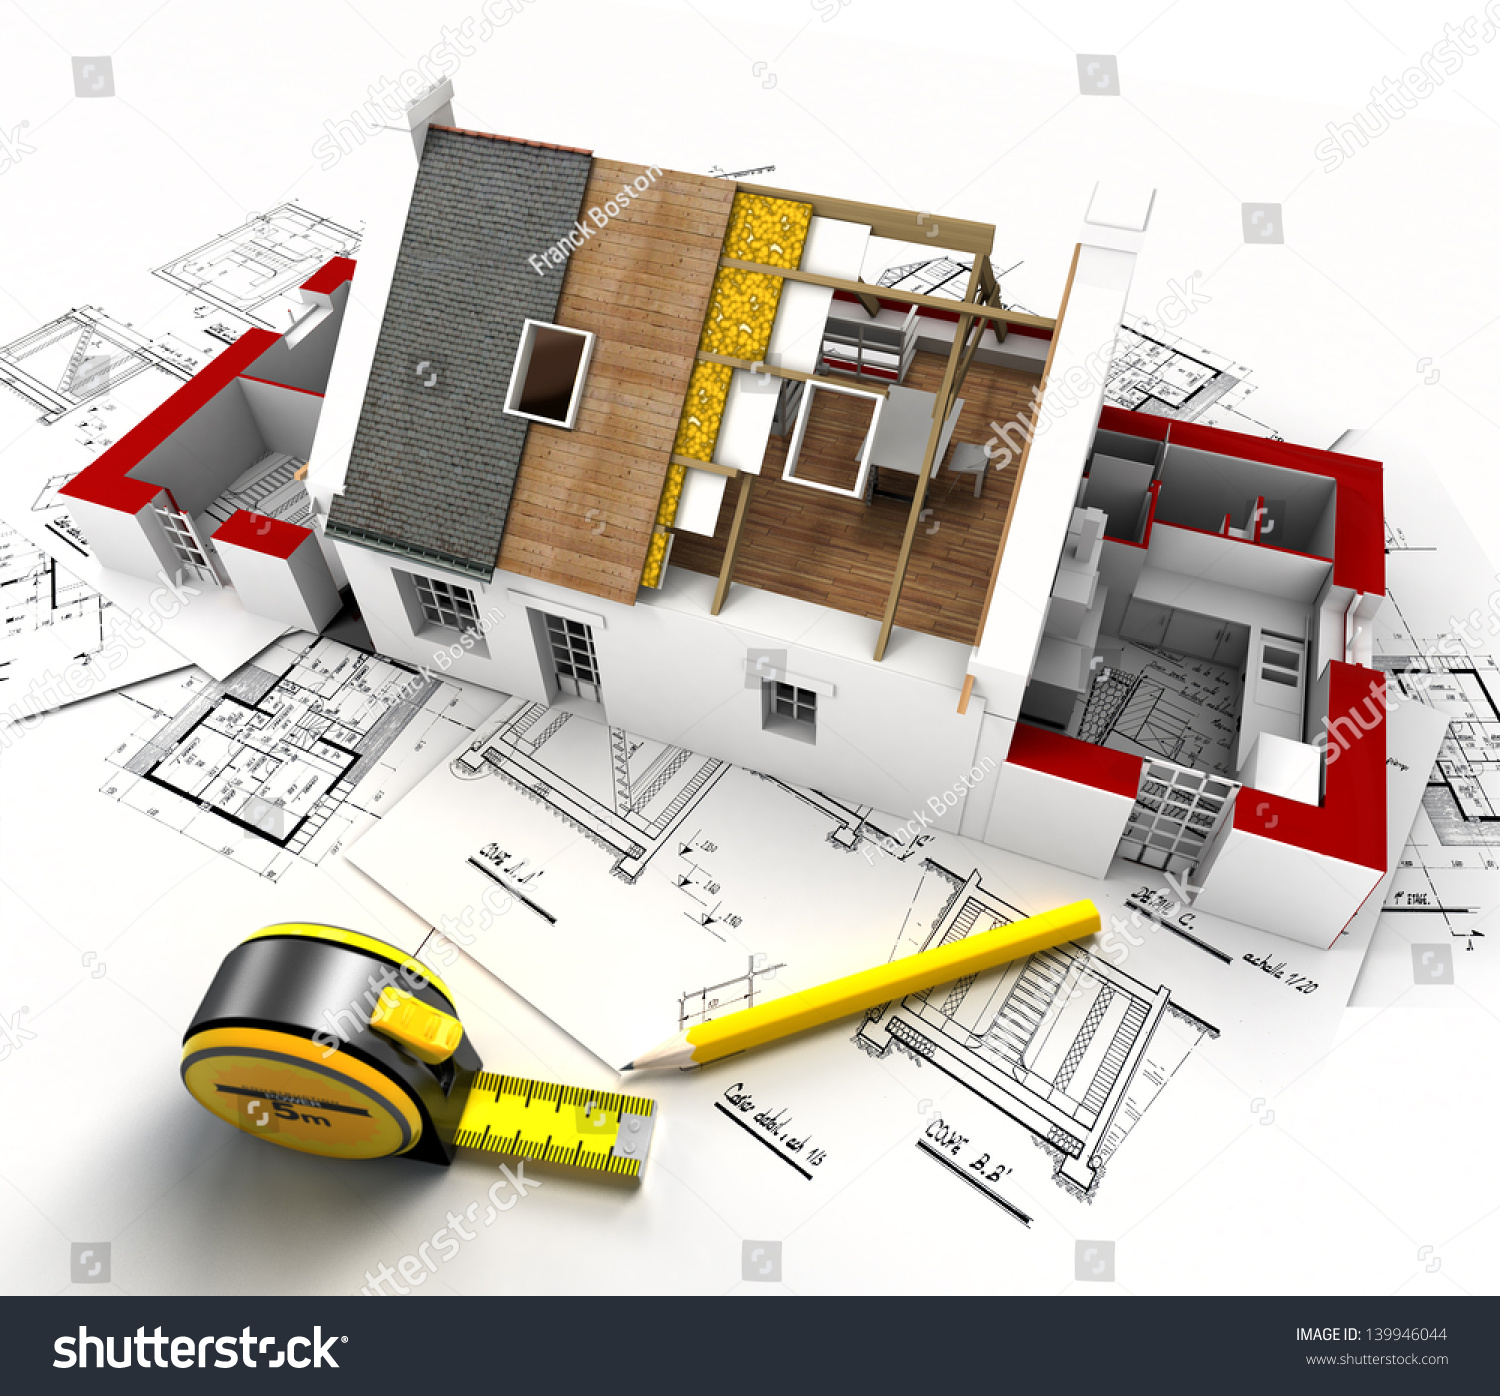 Aerial view house under construction blueprints stock for Architecture drawing tools